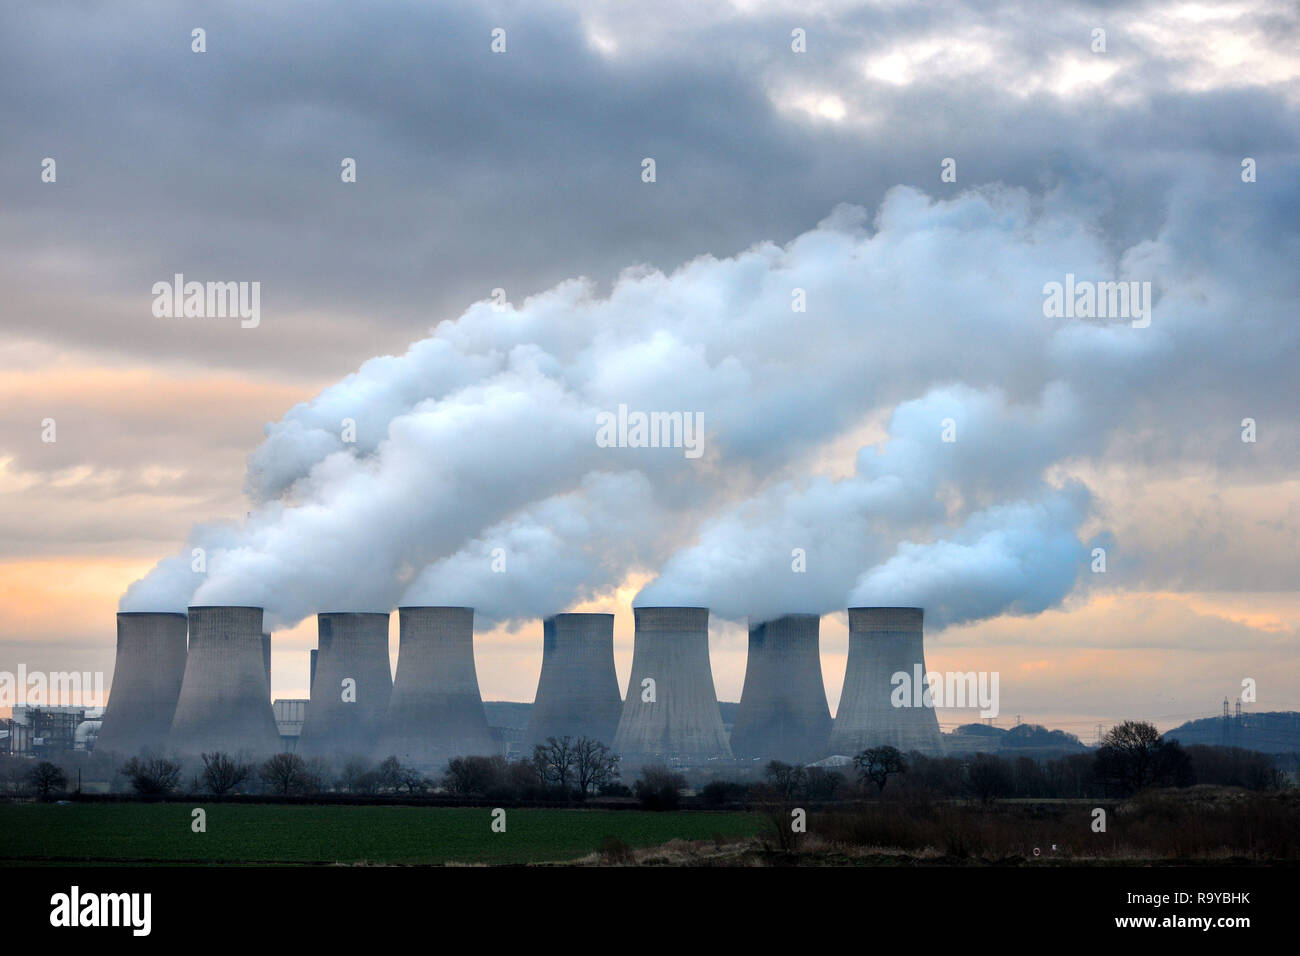 Ratcliffe sul carbone Soar Power Station Nottingham REGNO UNITO Immagini Stock